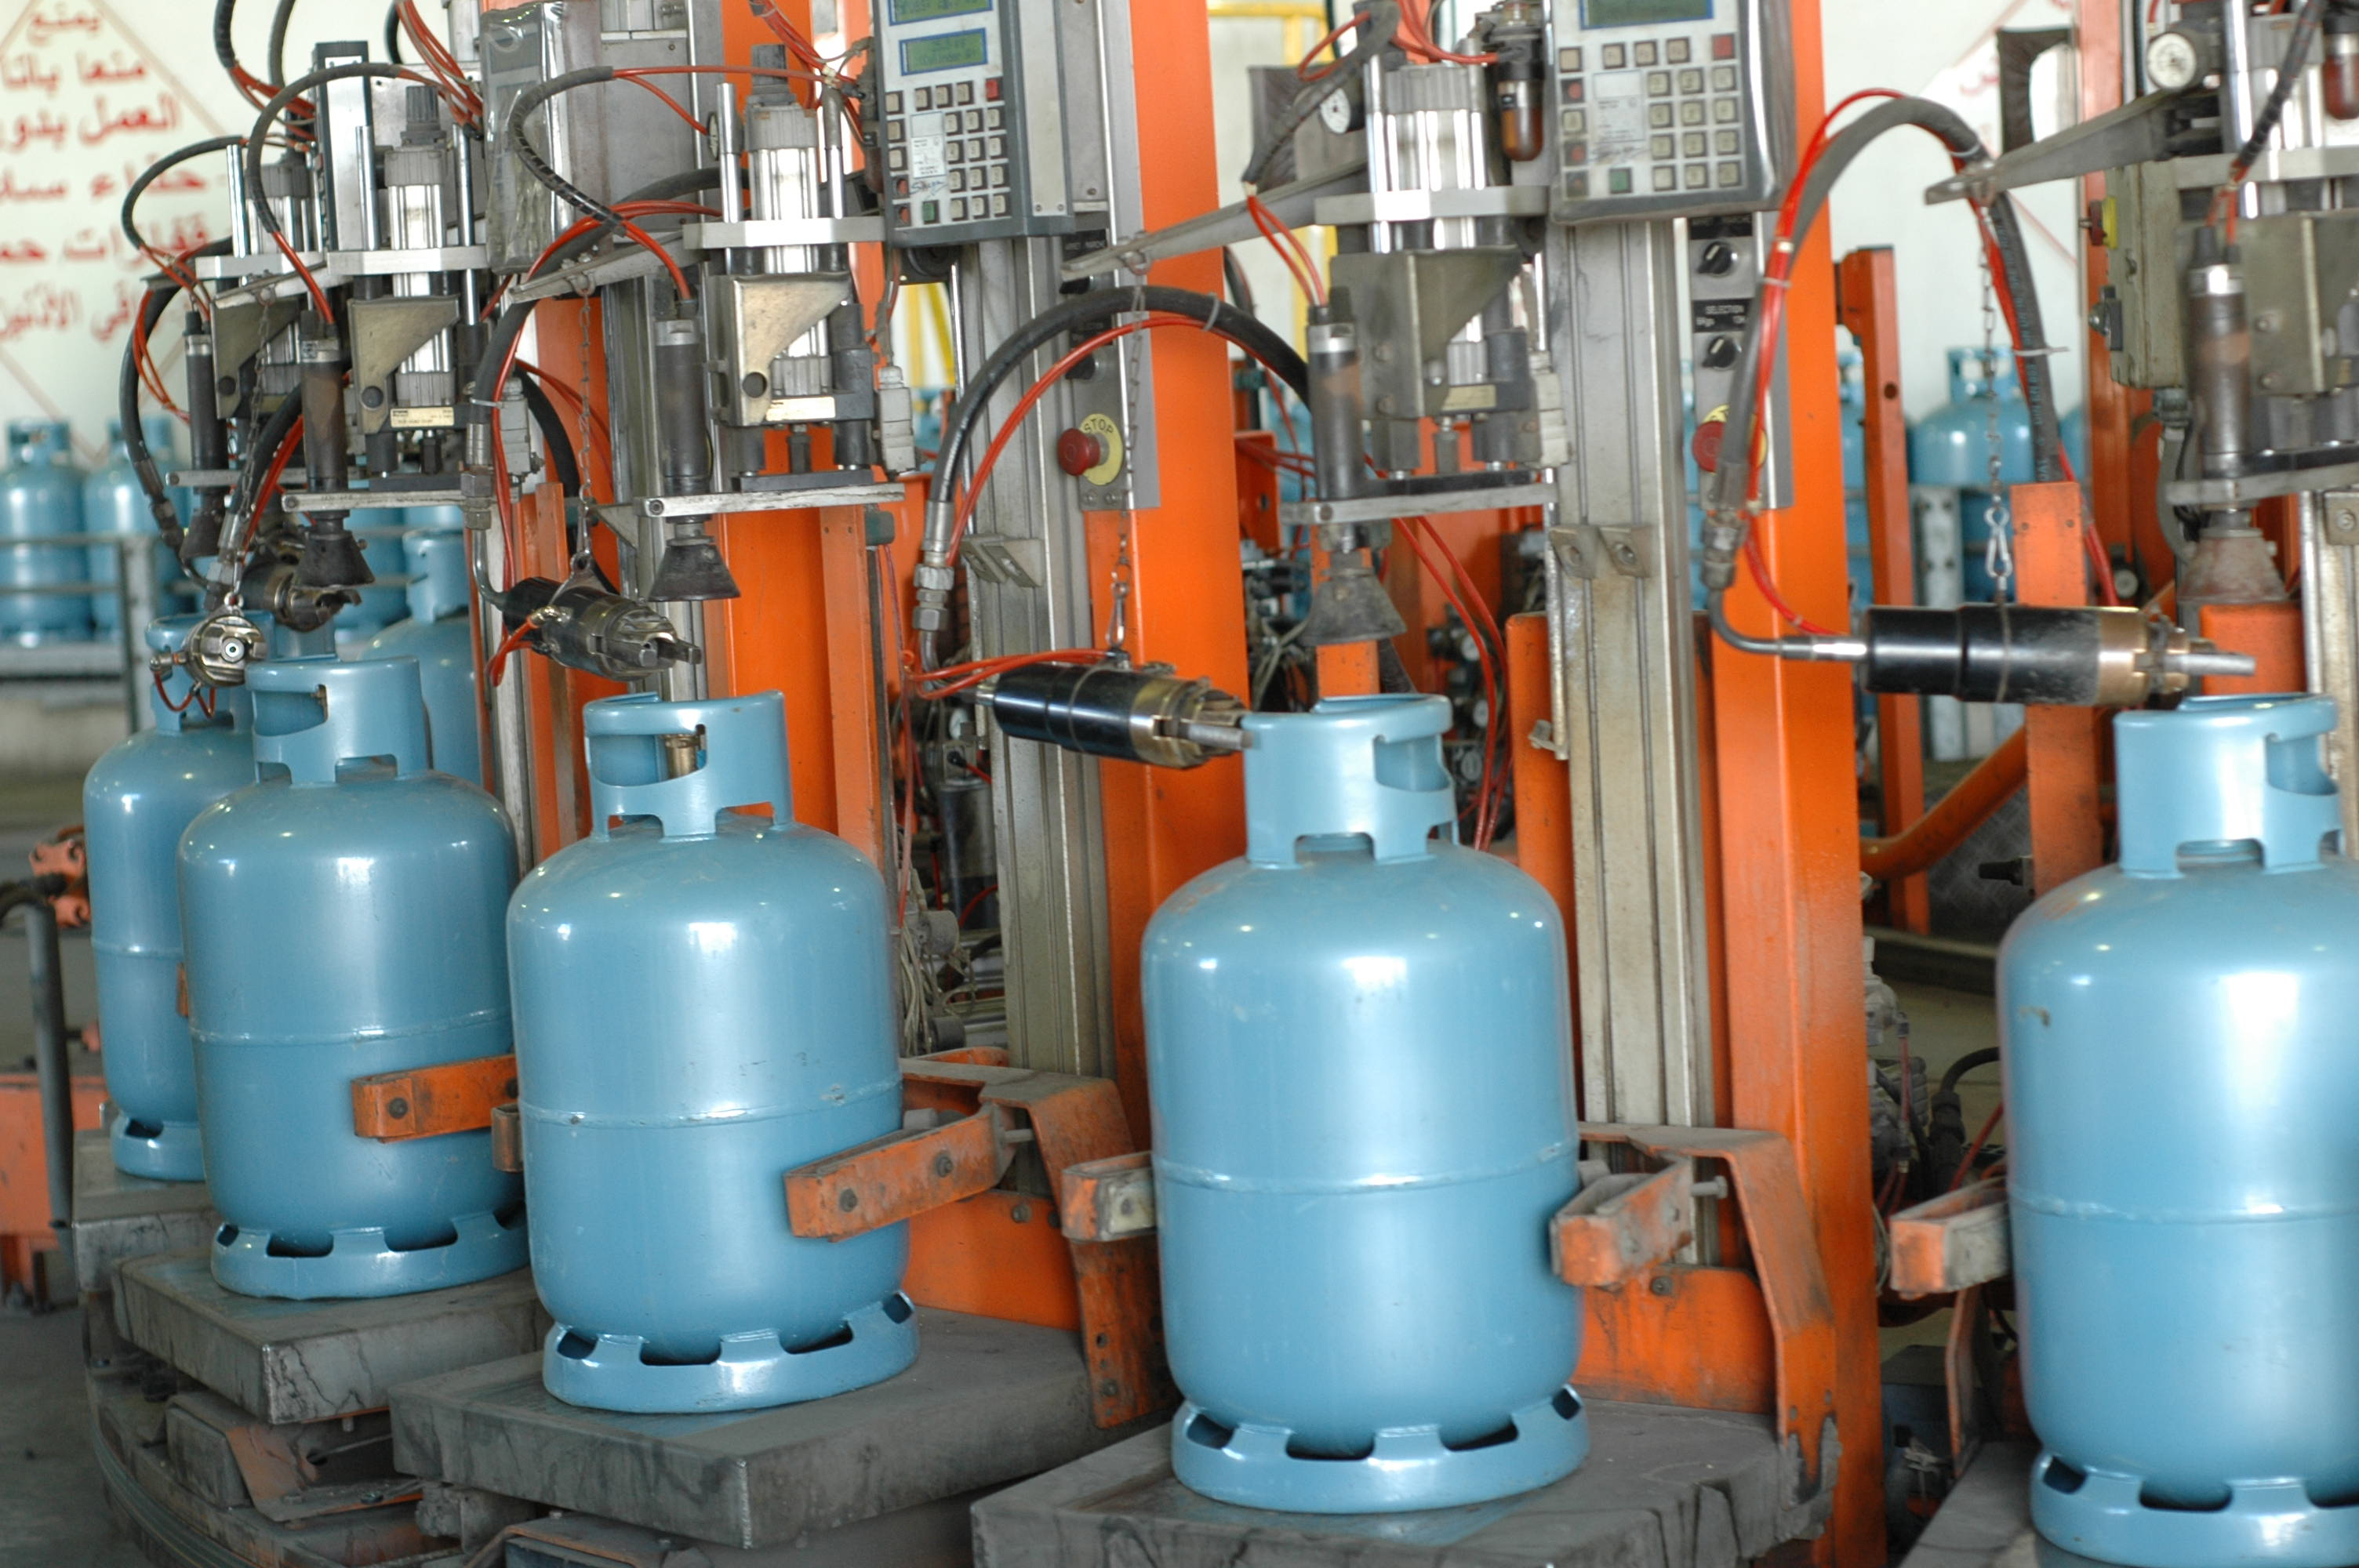 Production of gas cylinders LPG